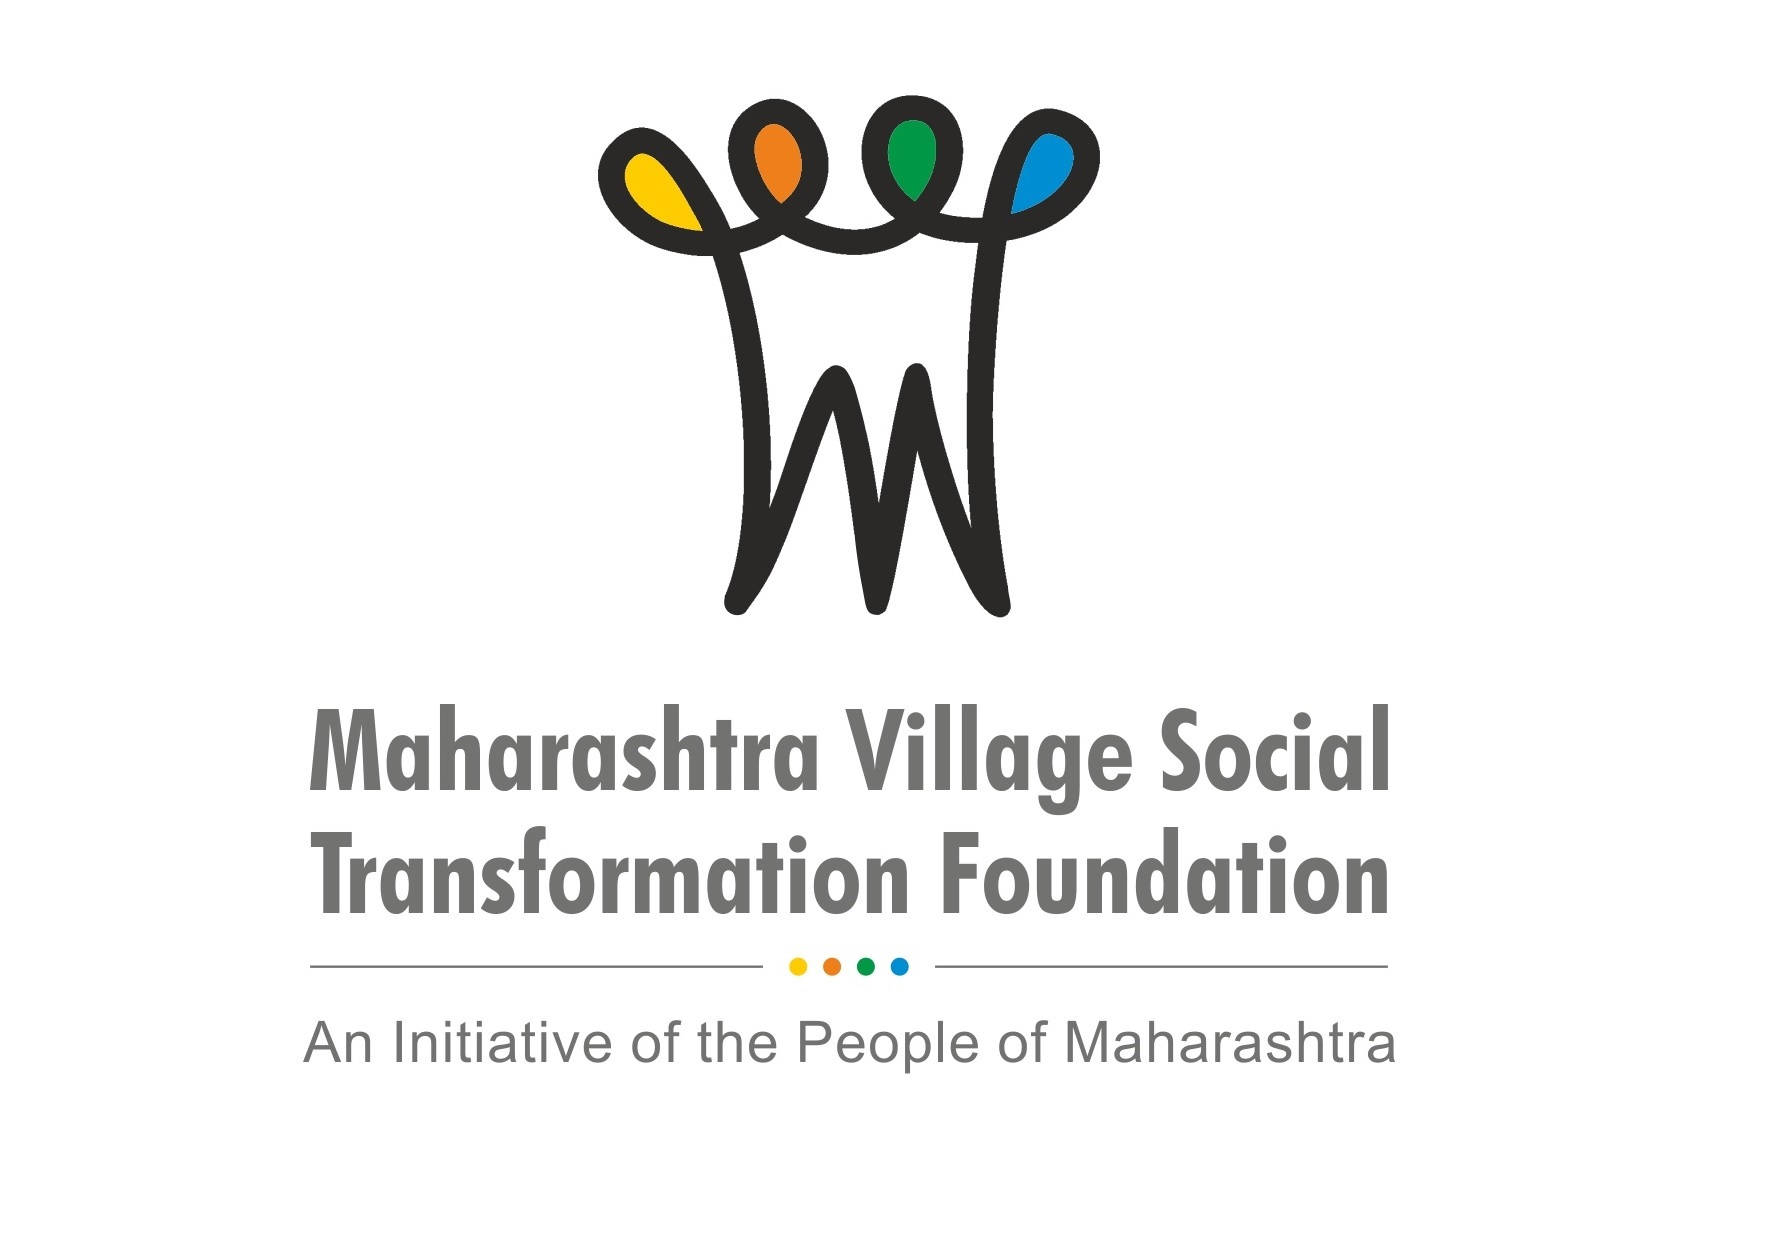 Village Social Transformation Foundation